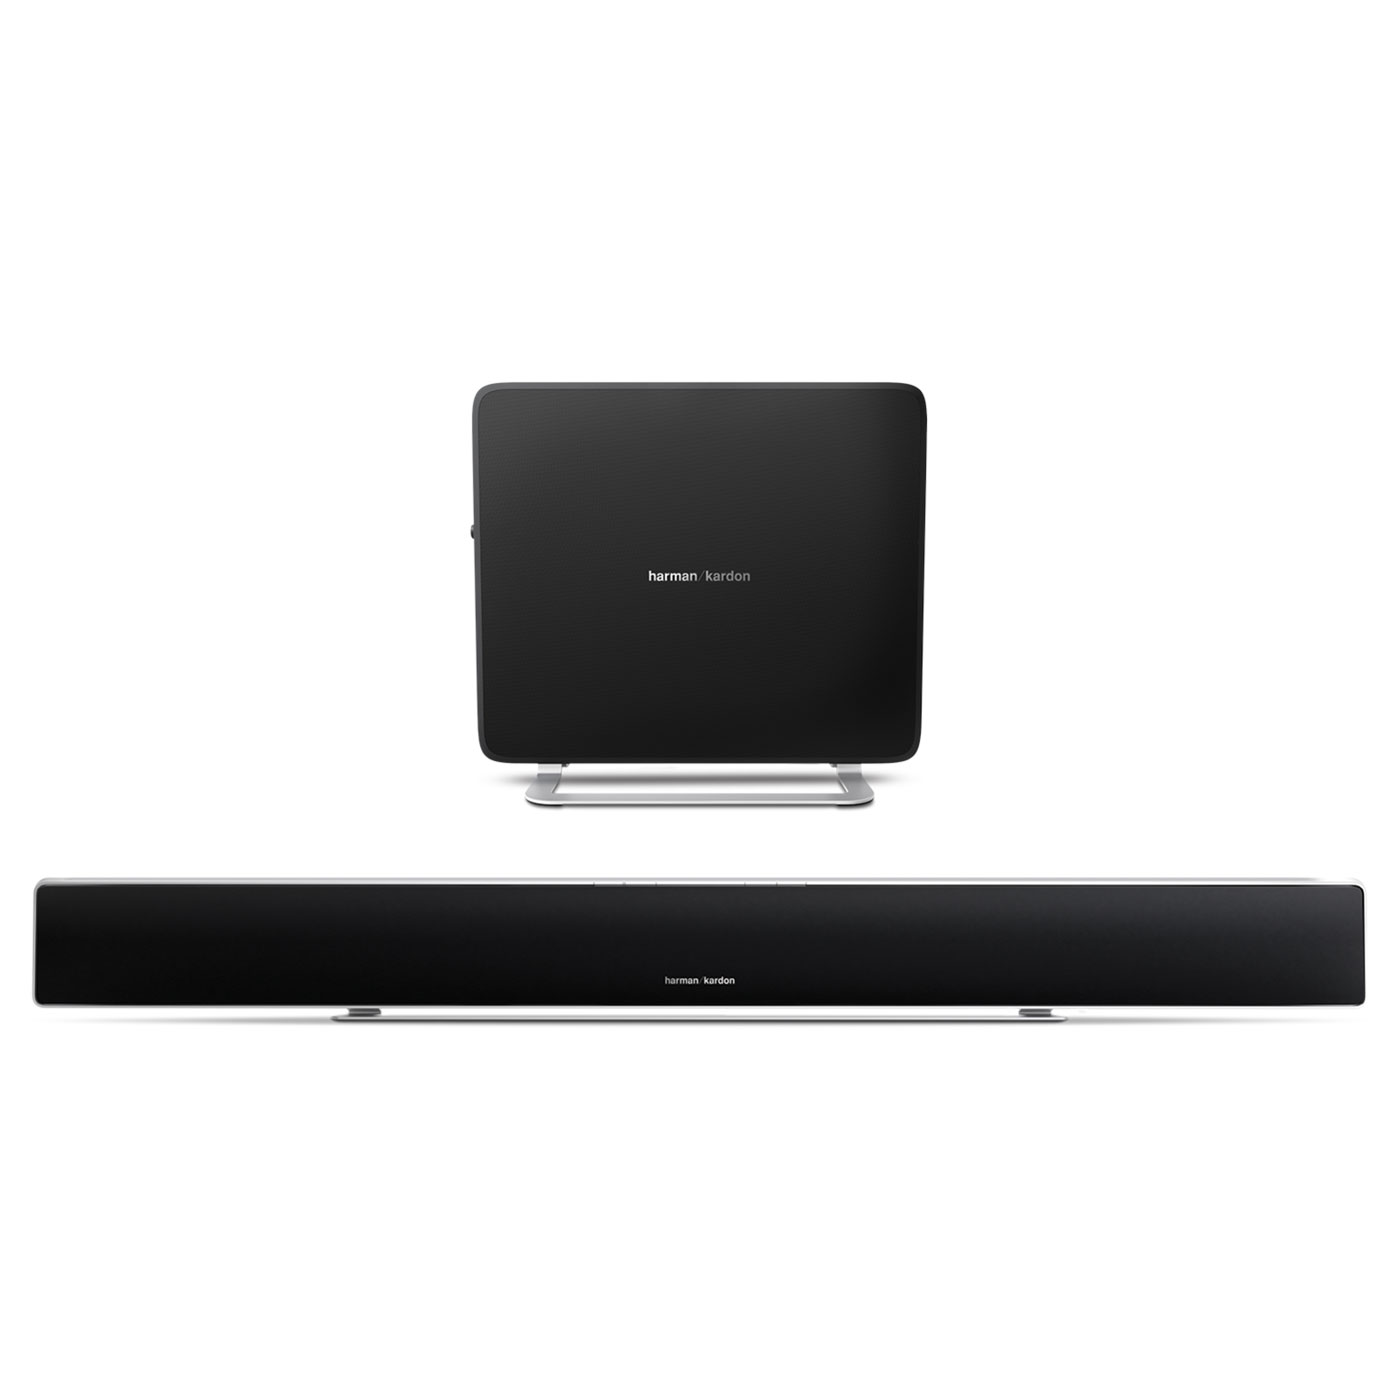 harman kardon sabre sb 35 barre de son harman kardon sur ldlc. Black Bedroom Furniture Sets. Home Design Ideas